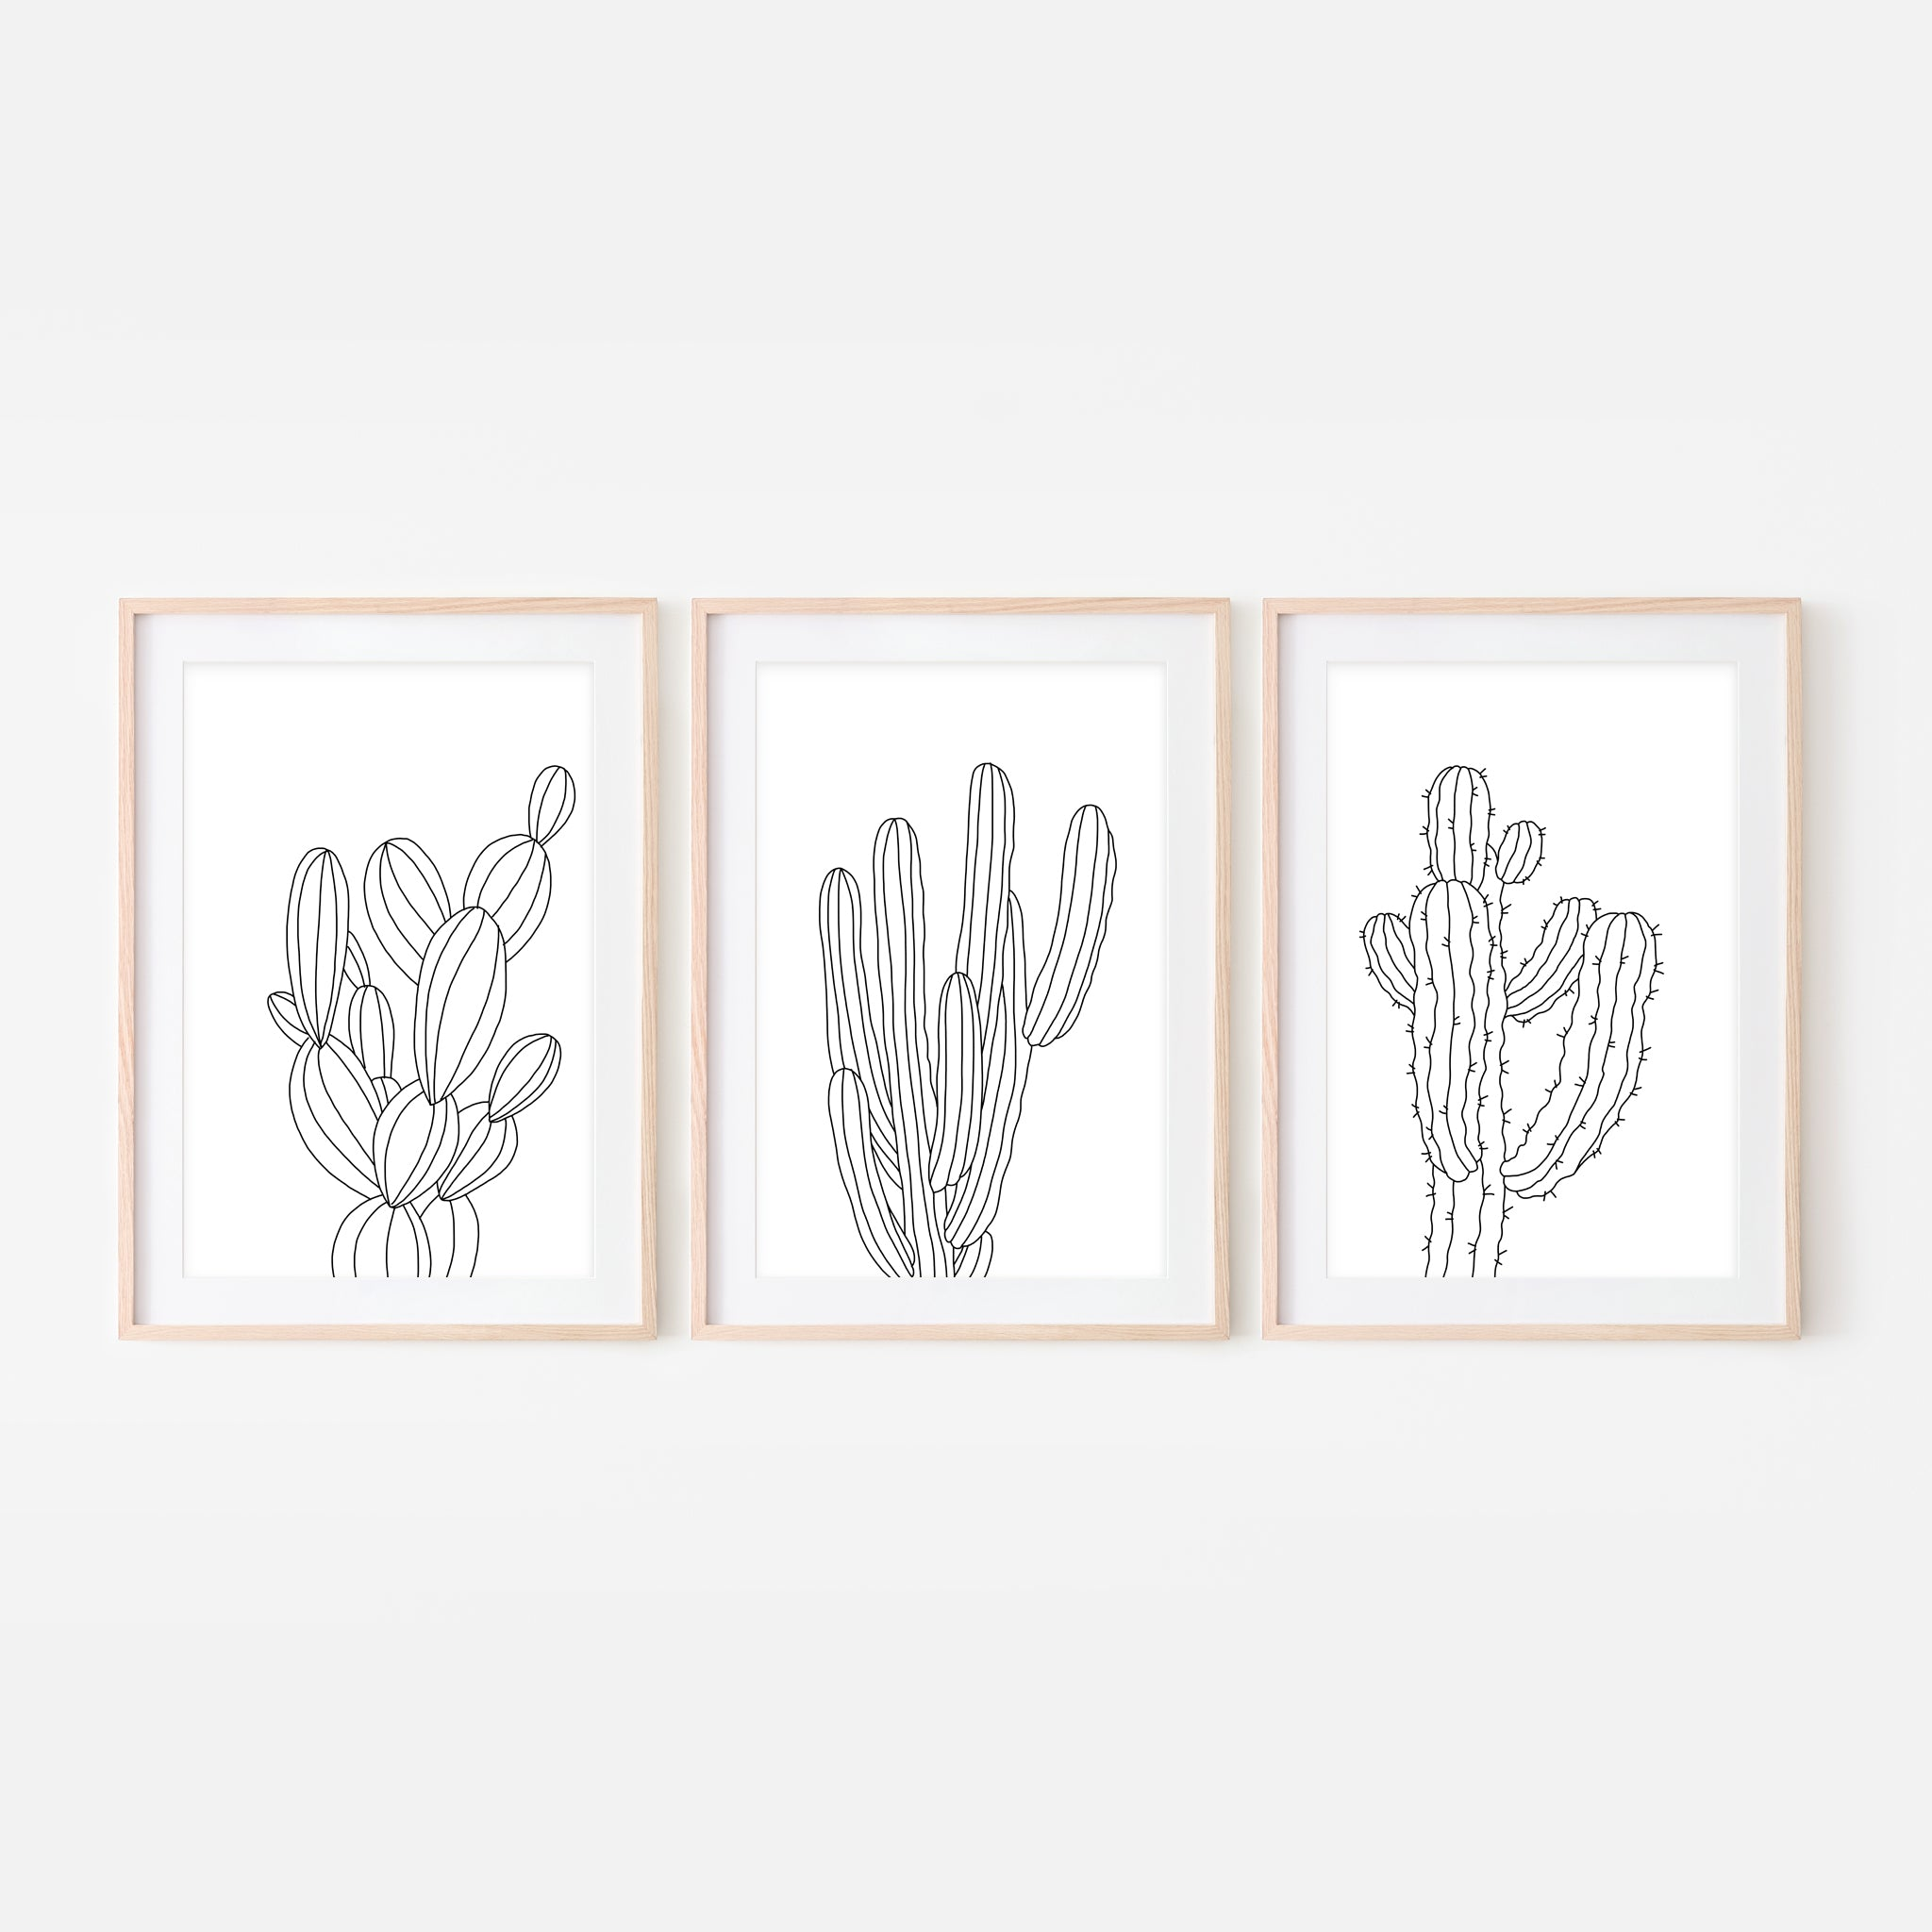 Set of 3 - Botanical Set No. 3 Wall Art - Minimalist Cactus Line Drawing - Black and White Print, Poster or Printable Download